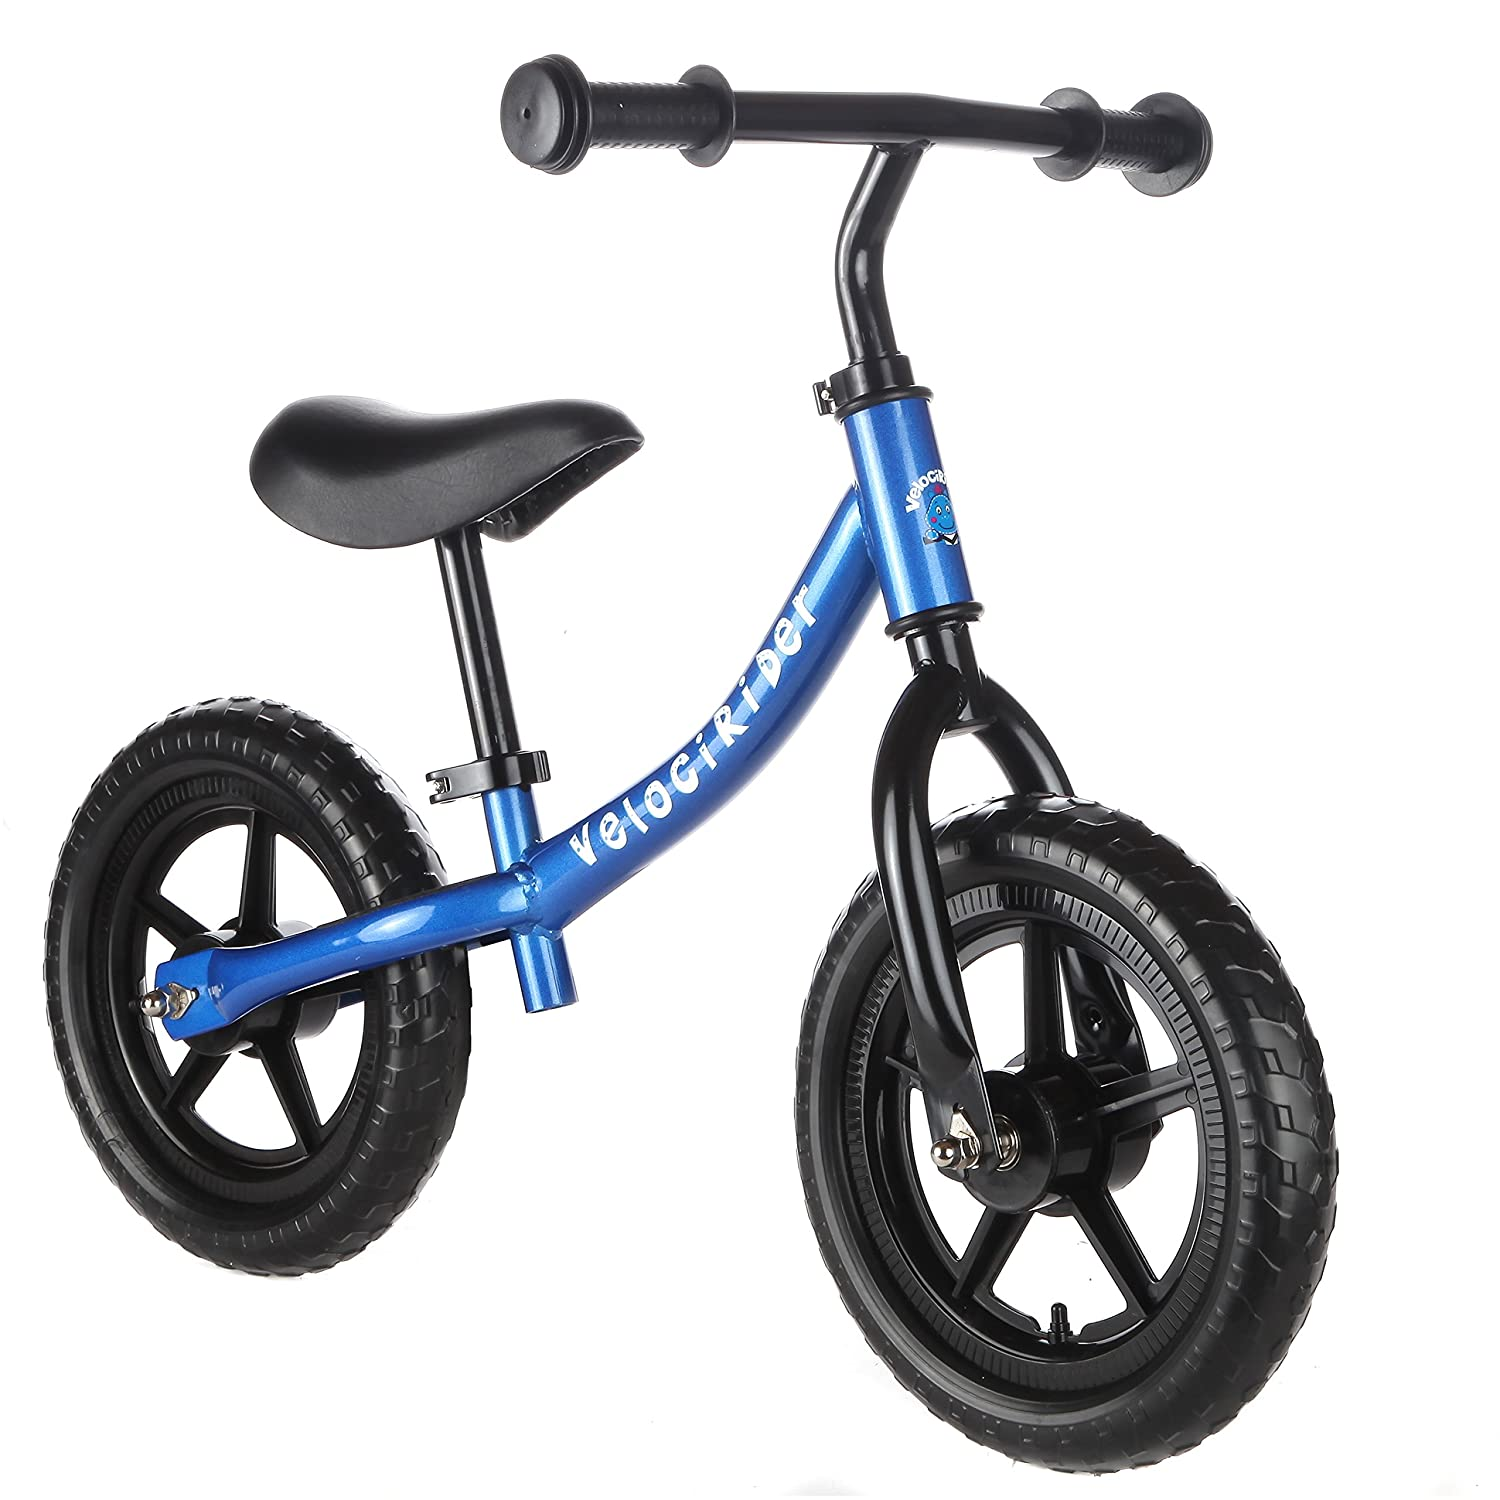 Best Balance Bike for Kids & Toddlers - Boys & Girls Self Balancing Bicycle with No Pedals is Perfect for Training Your 2 - 4 Year Old Child Teddy Shake